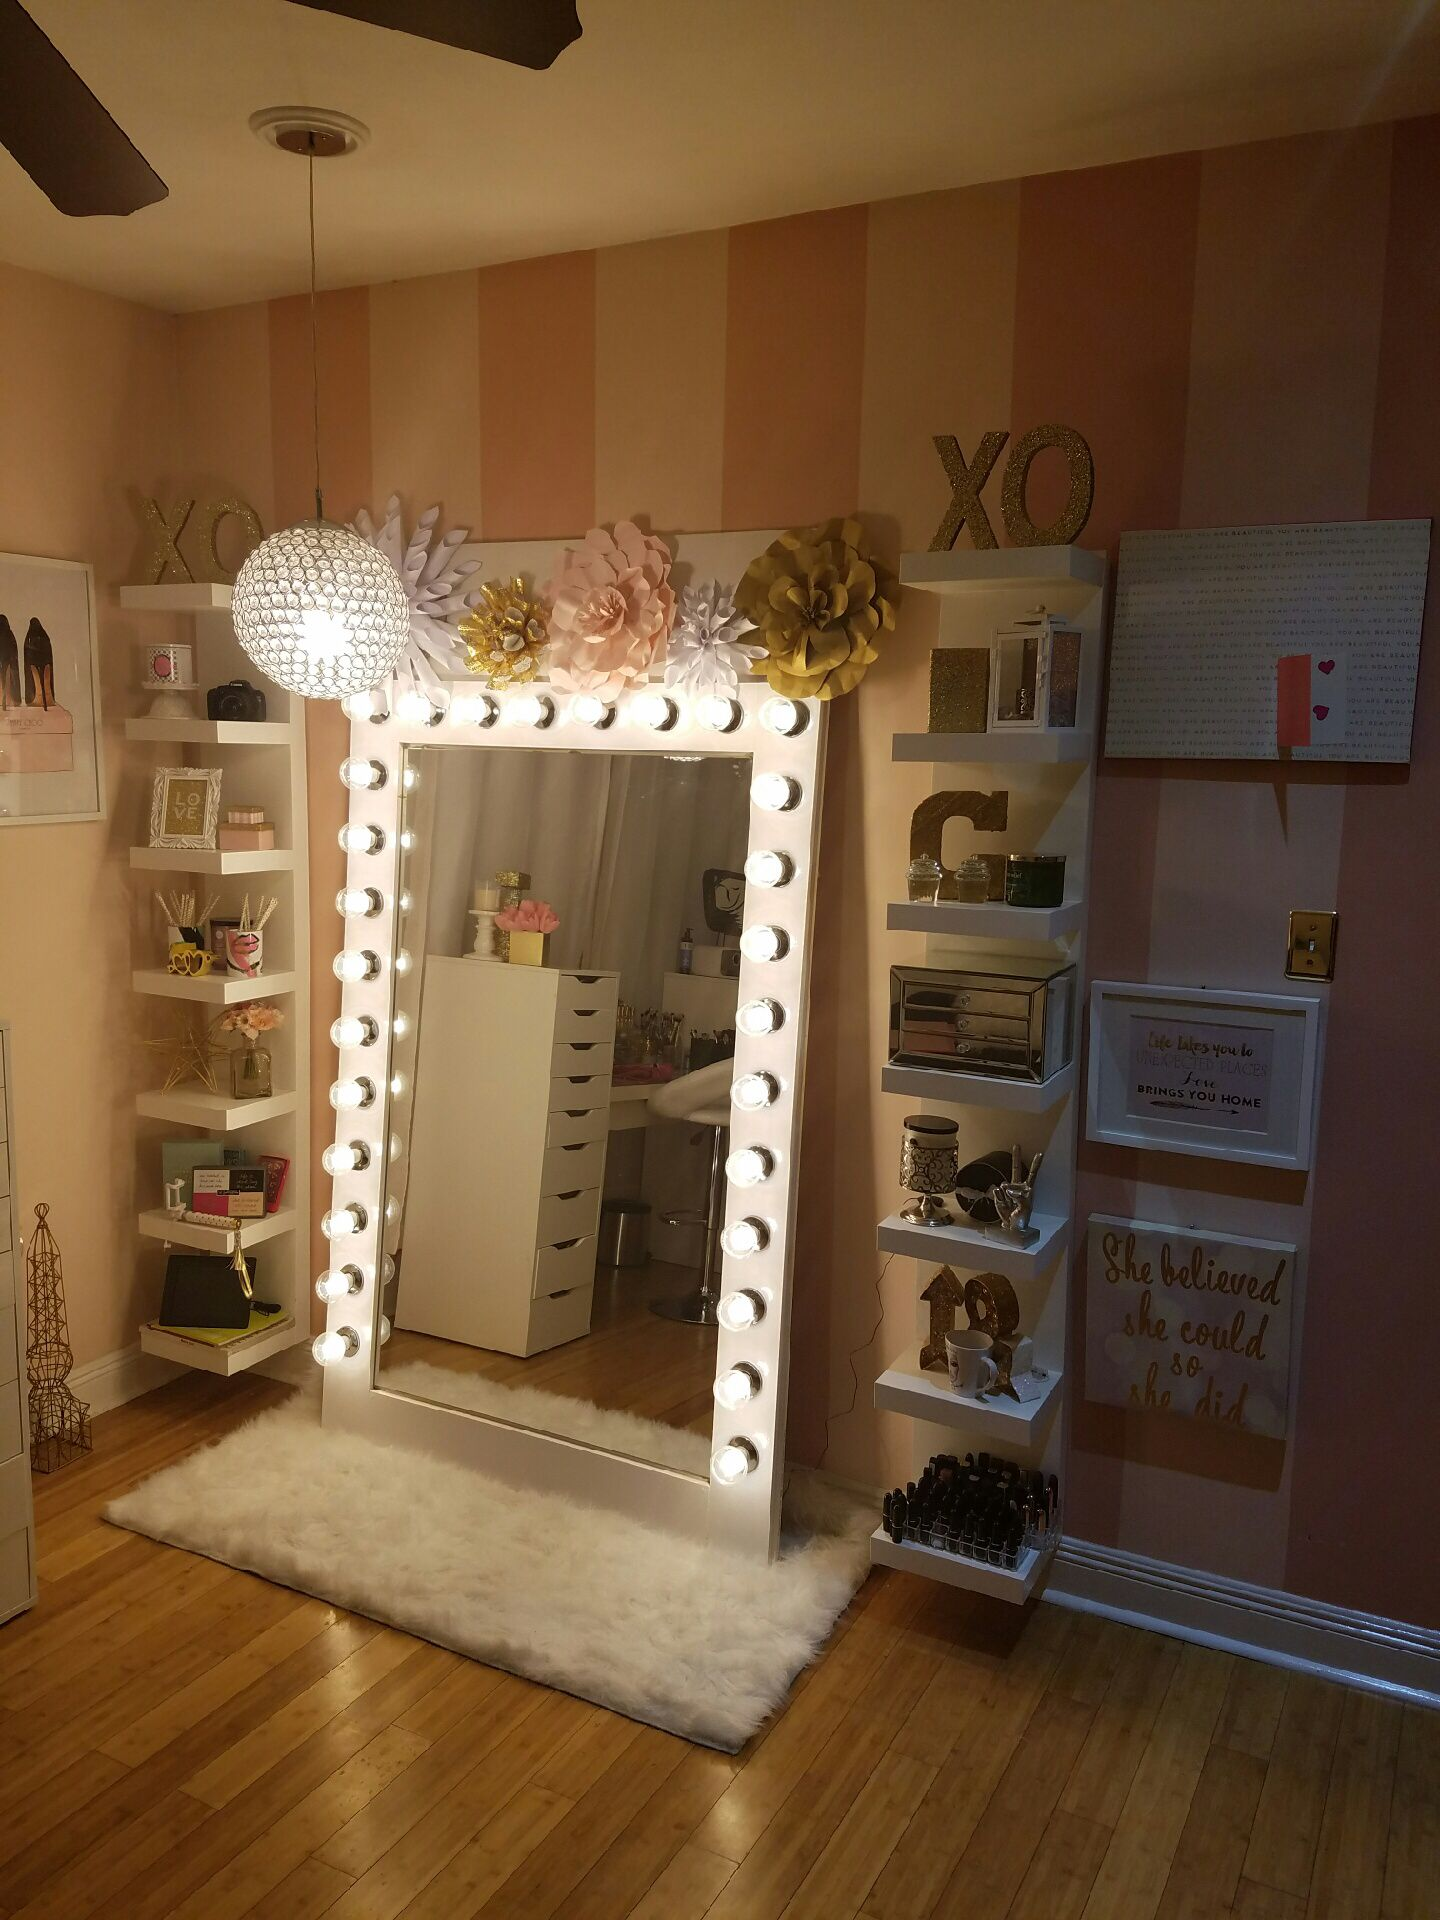 Makeup Storage With Diy Style Hollywood Glam Light Room Inspiration Glam Room Room Design